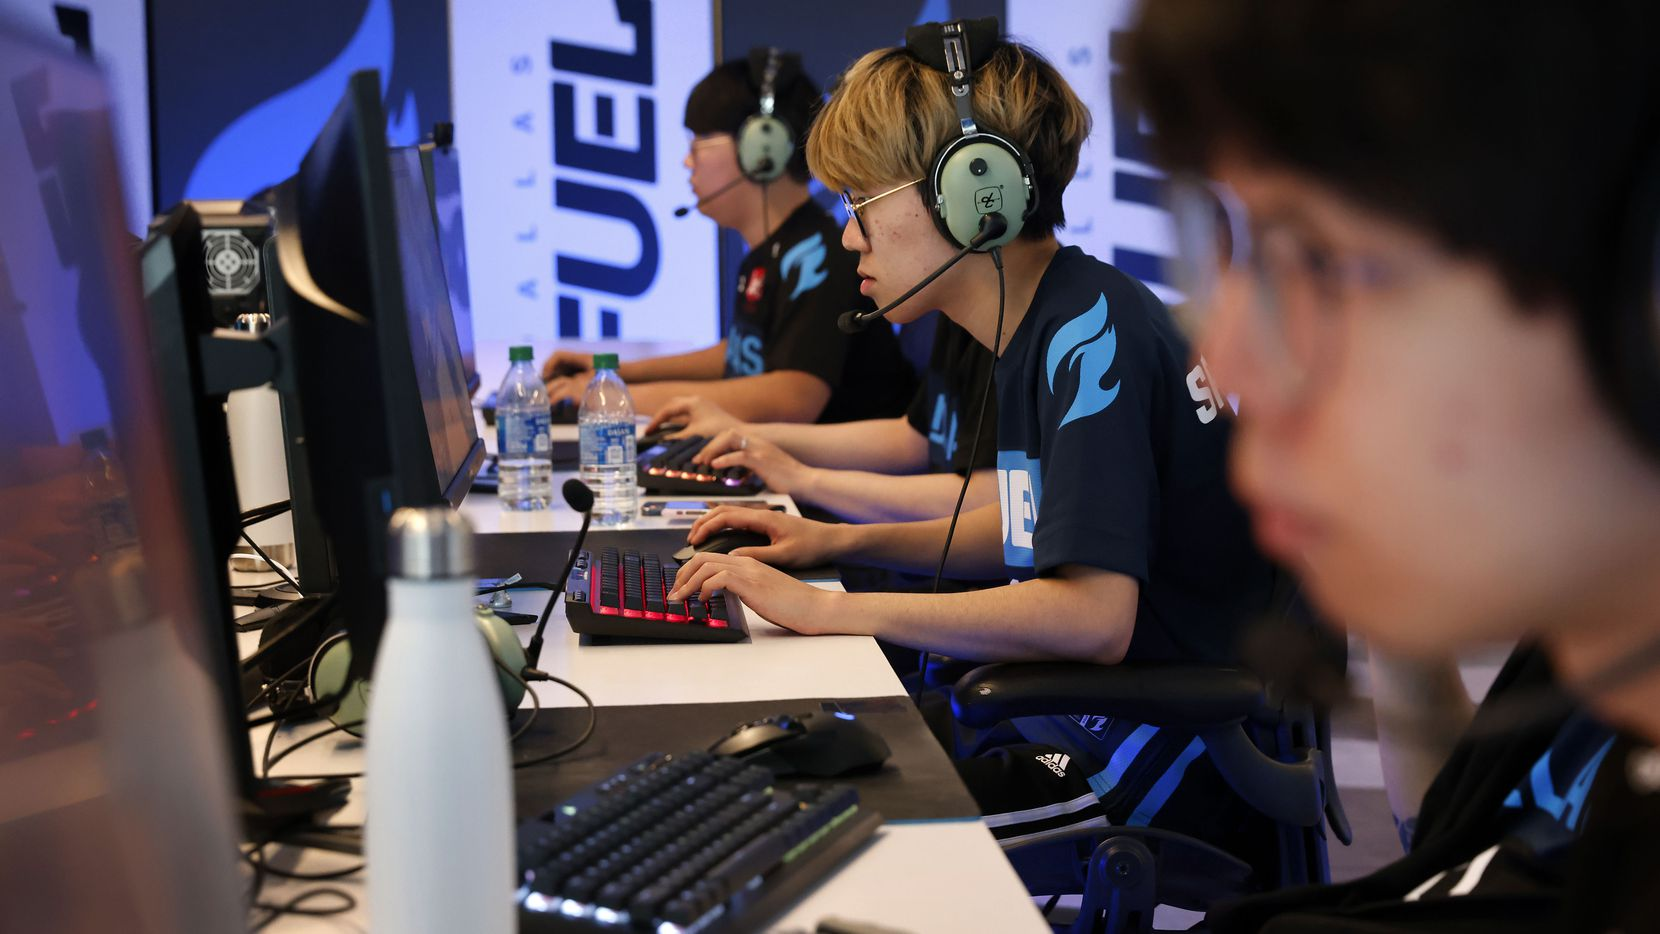 """Dallas Fuel Overwatch League players (from left) Hanbeen 'Hanbin' Choi, Yeonghan 'SP9RK1E' Kim, and  Kim """"DoHa"""" Dong-Ha practice ahead of their season opener against Houston at Envy Gaming Headquarters in Dallas, Monday, March 29, 2021. (Tom Fox/The Dallas Morning News)"""